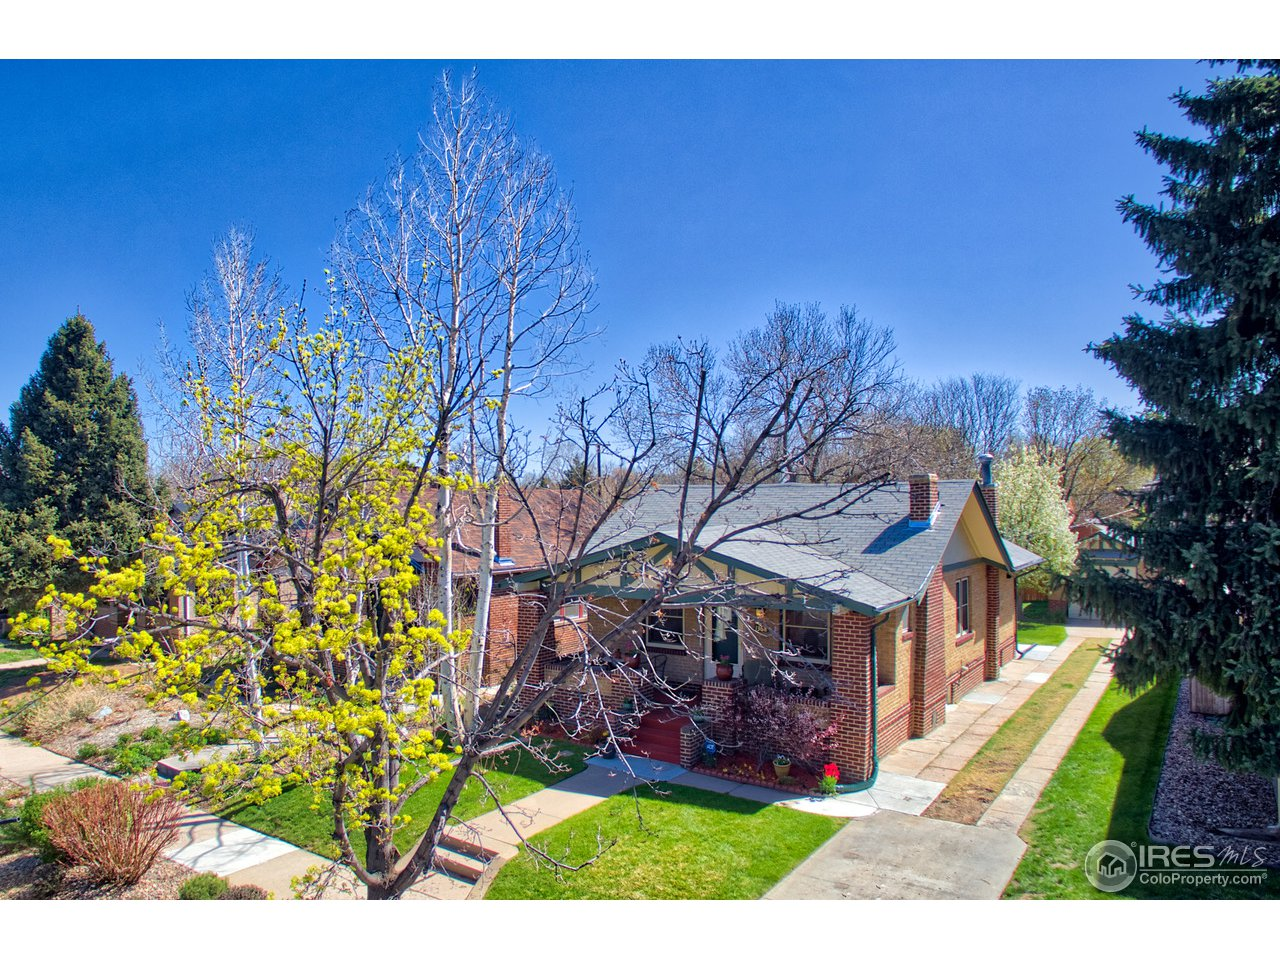 1368 Elm St, Denver CO 80220